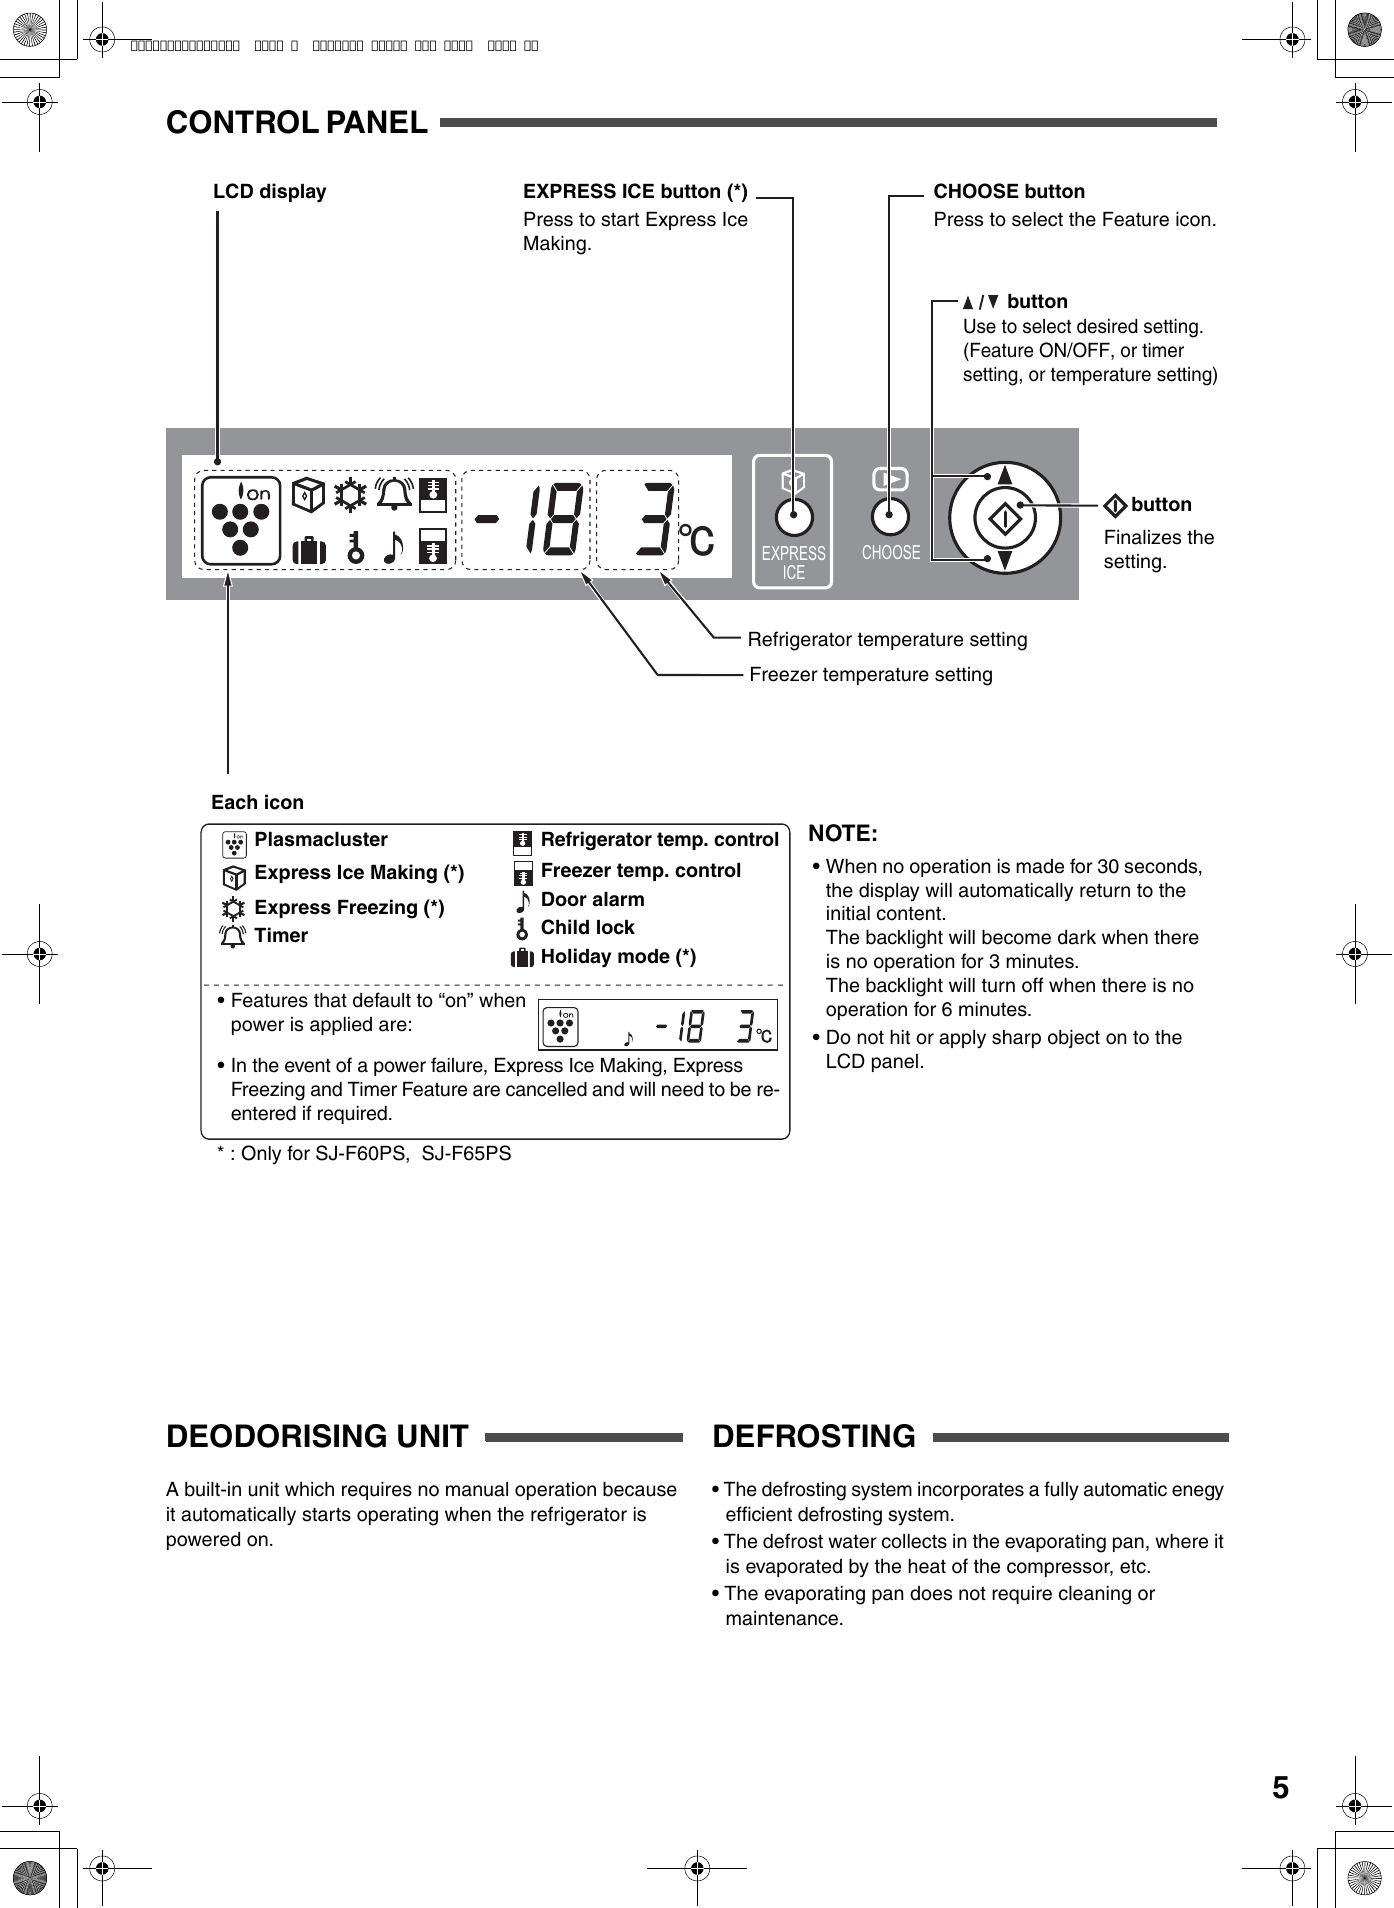 Sharp Fridge Manual 1990 Oldsmobile 88 Royale Diagram Wiring Schematic Array Sj F60pc F60ps F65ps F65pc User To The